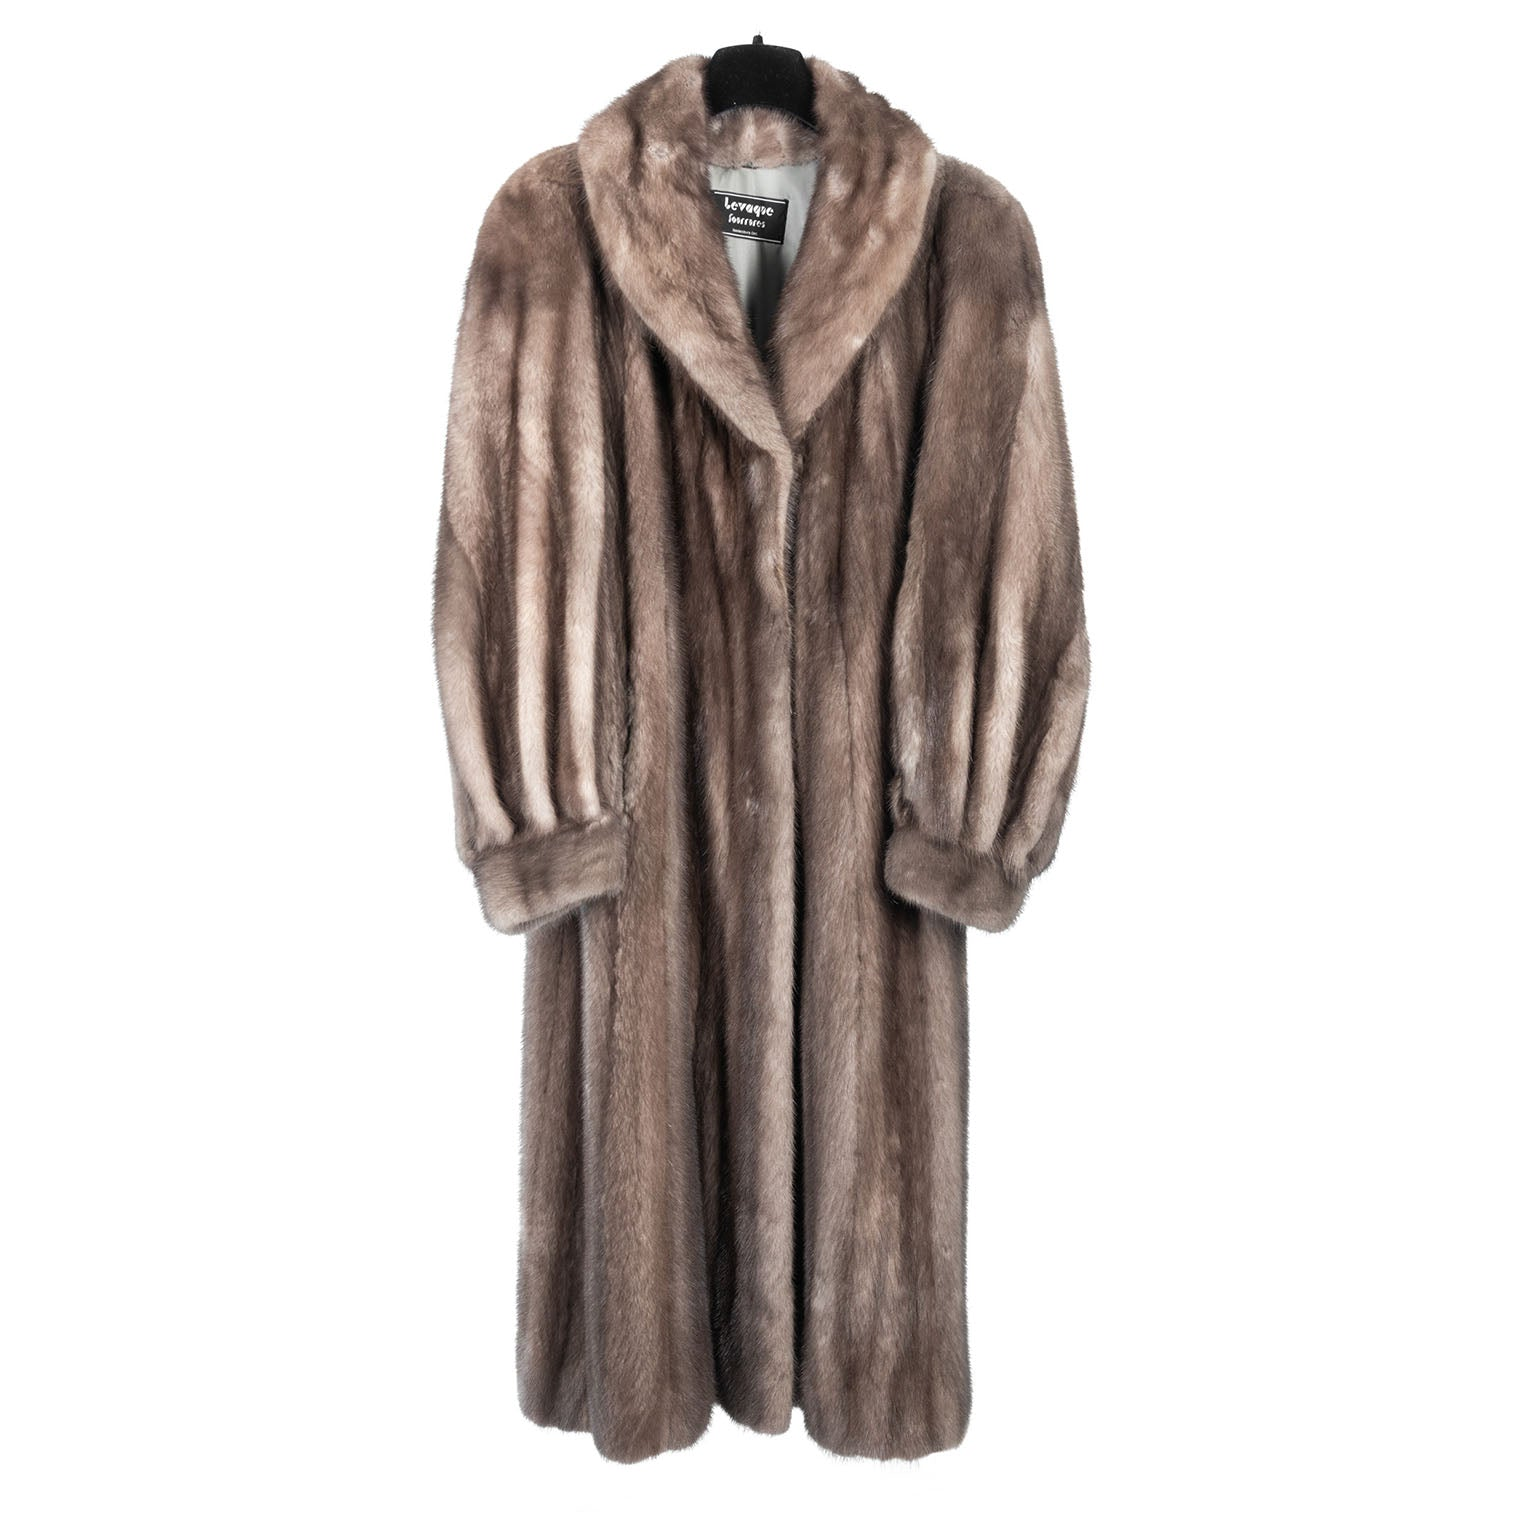 Taupe Mink Full Length Coat